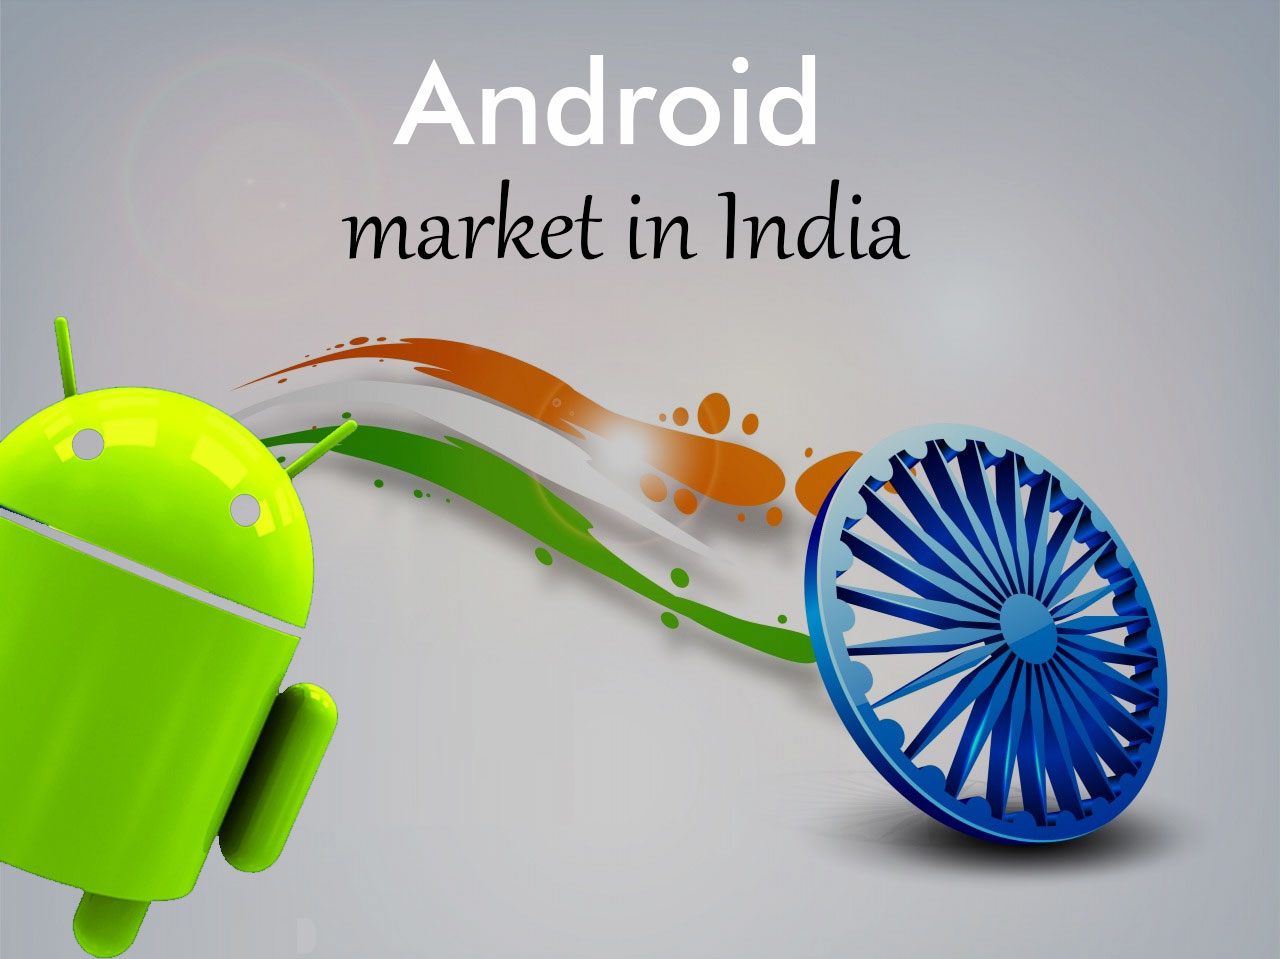 Android market in India